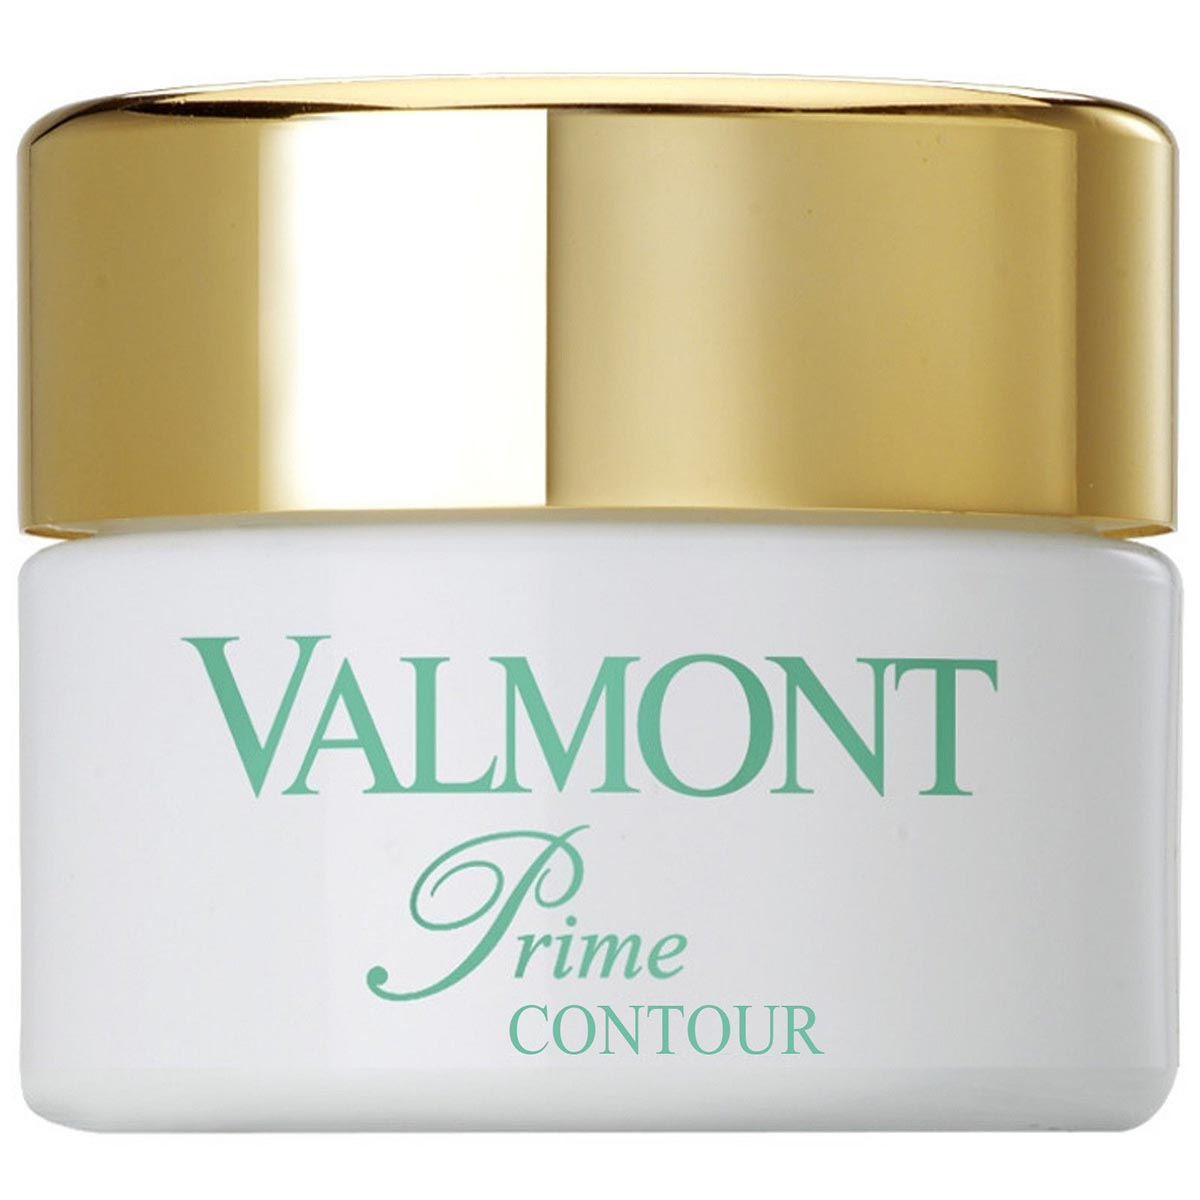 Valmont energy prime contour eye cream 15ml